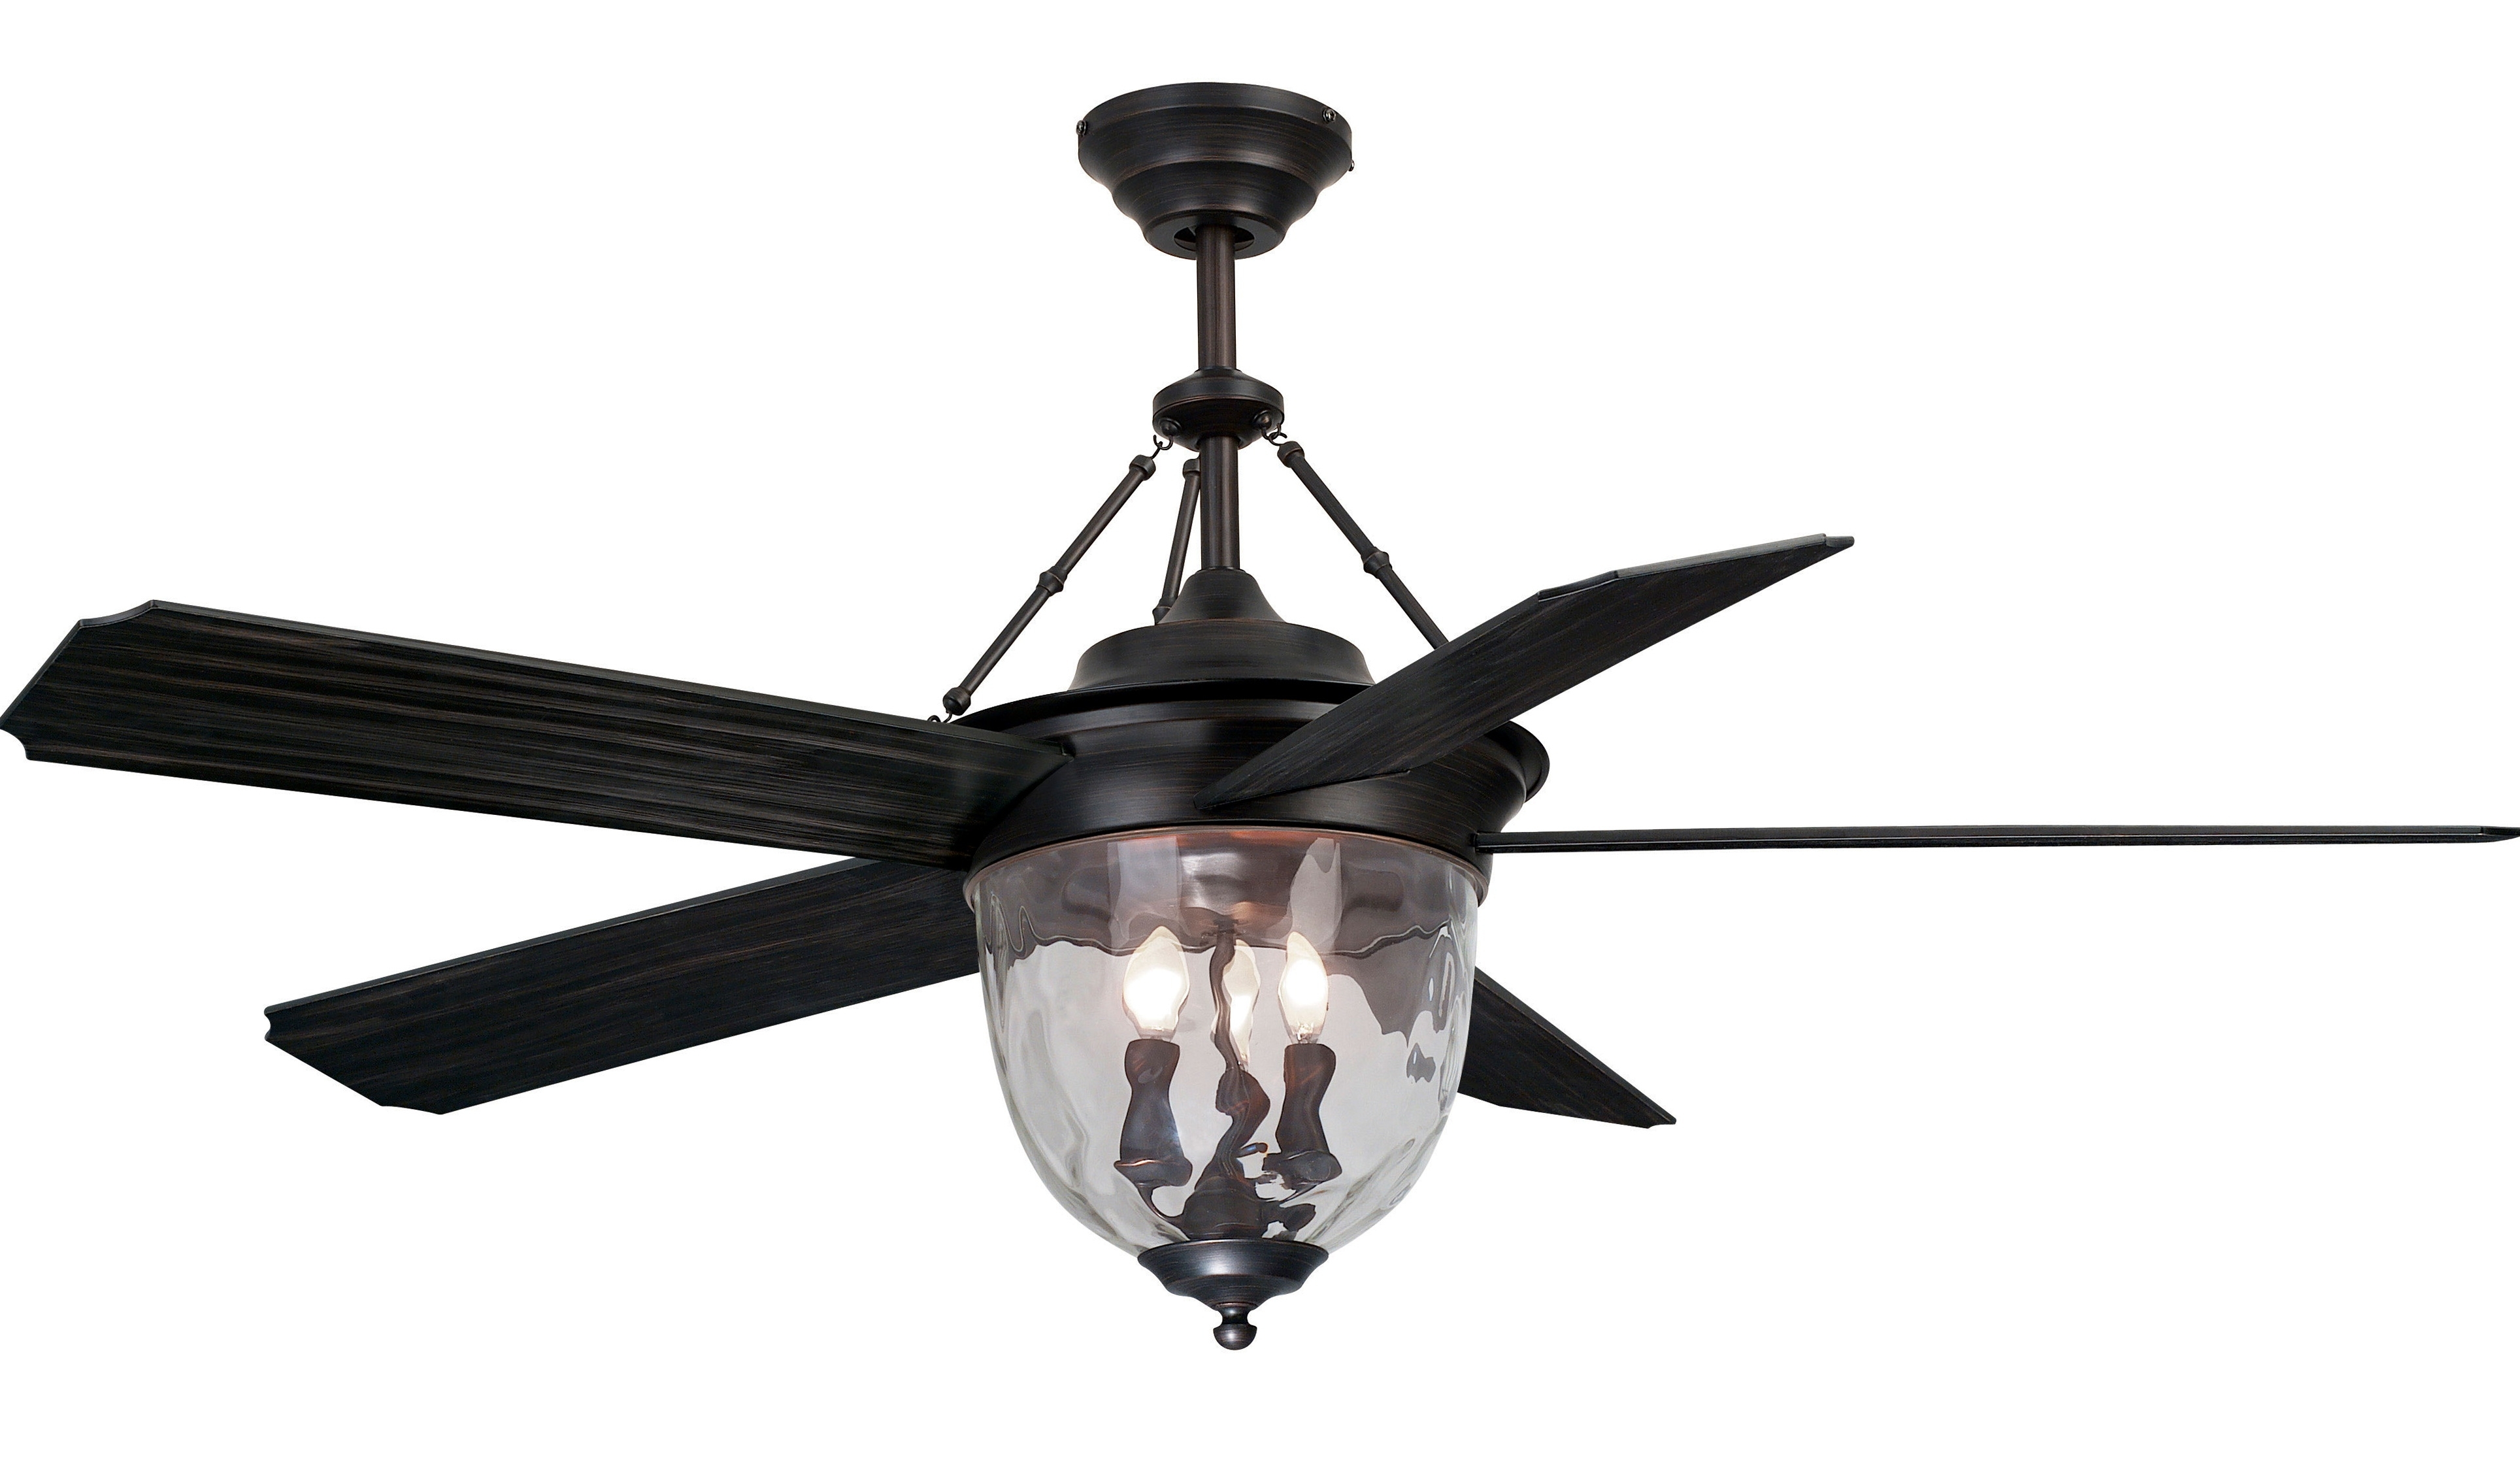 Lowes Outdoor Ceiling Fans With Light Home Design Ideas Plus Fan Within Outdoor Ceiling Fans With Lights At Lowes (#4 of 15)